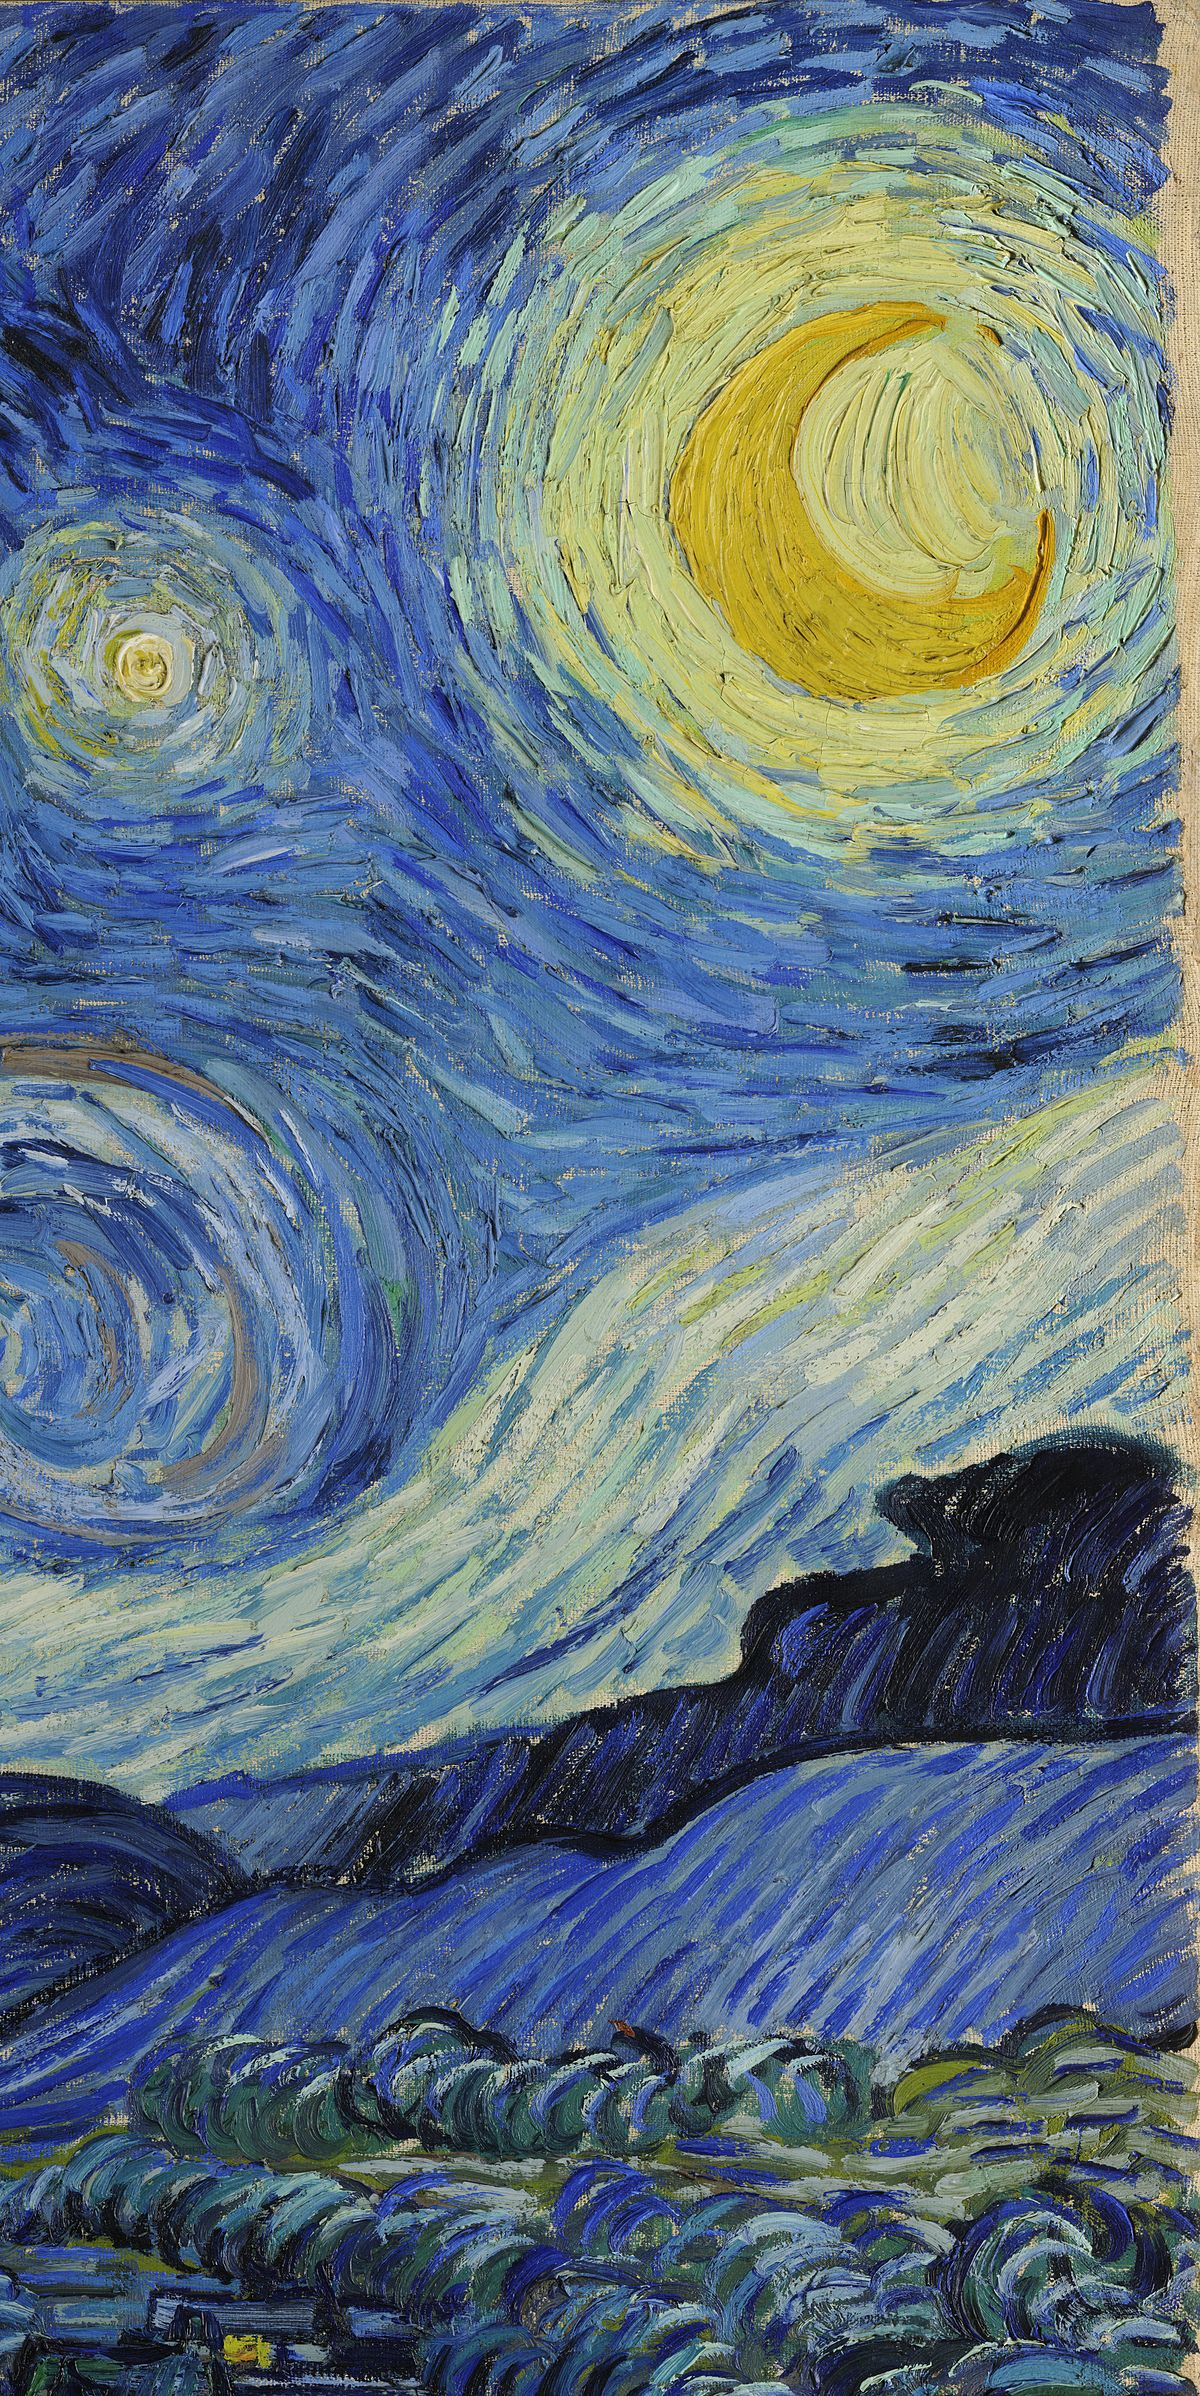 File Van Gogh Starry Night Google Art Project X1 Y0 Jpg Wikimedia Commons Watch all of y0nd's best archives, vods, and highlights on twitch. file van gogh starry night google